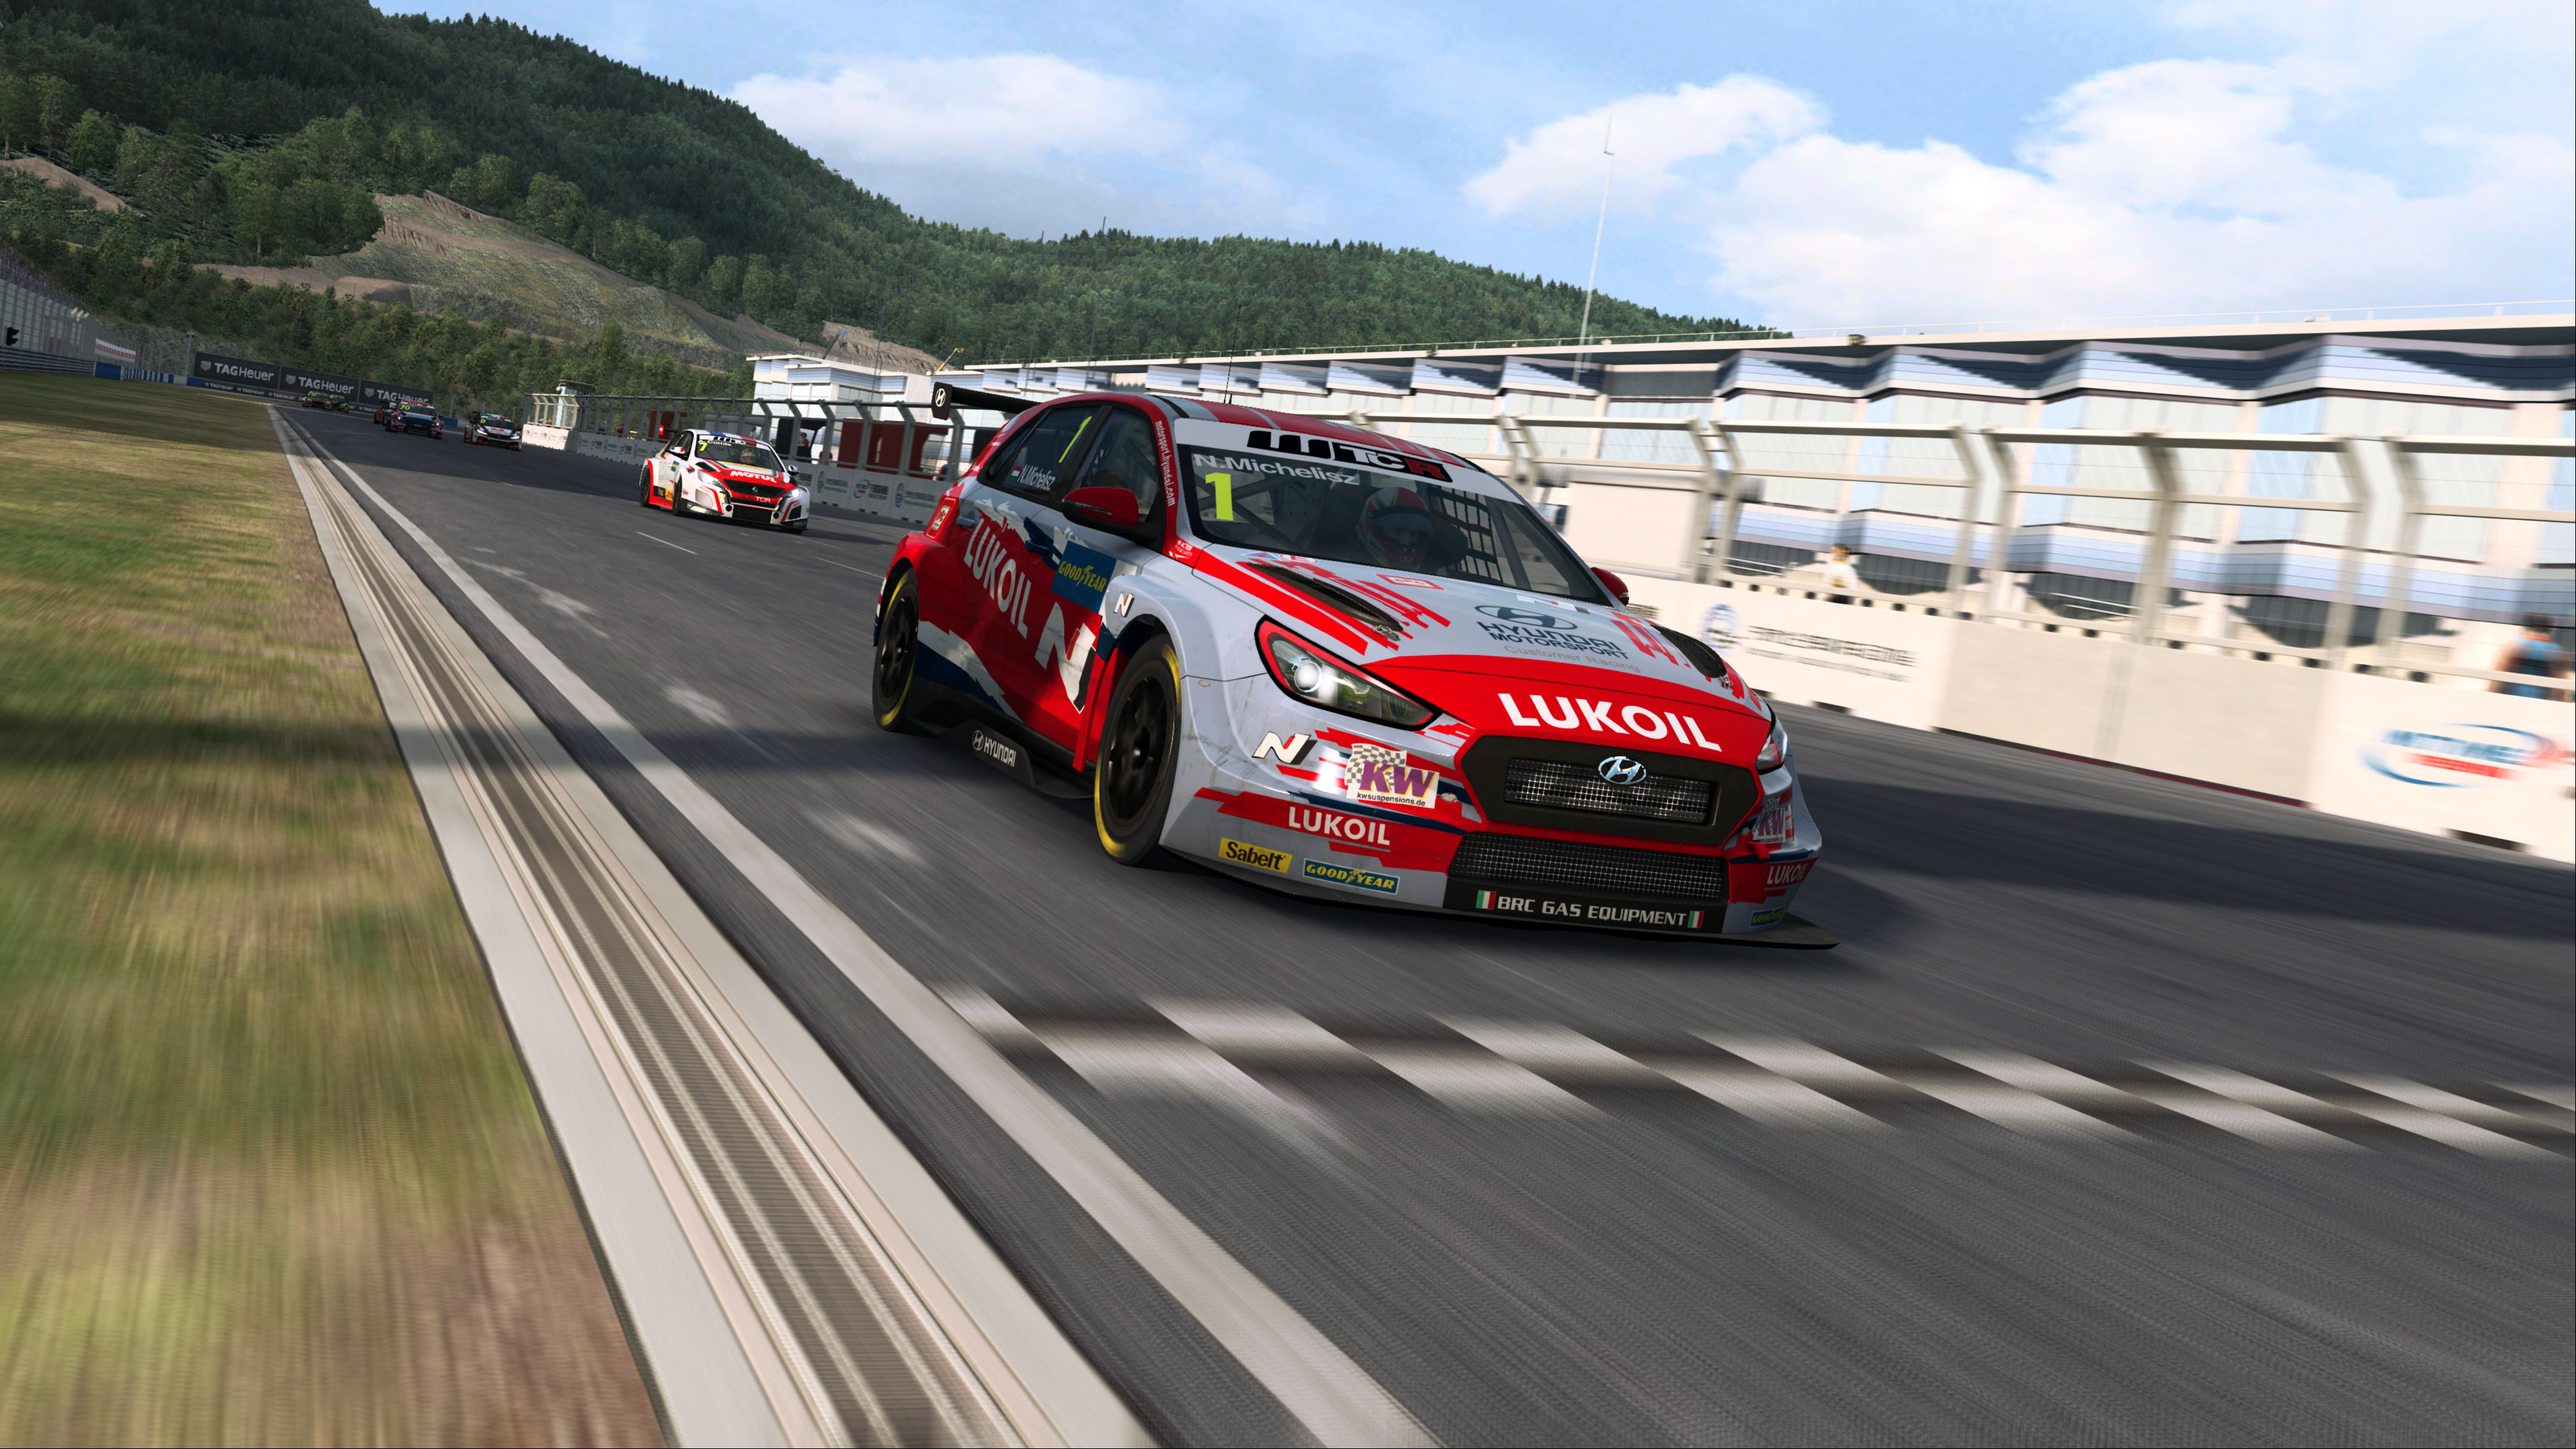 #RaceAtHome: King Michelisz shows his simracing skills with first pre-season Esports WTCR victory